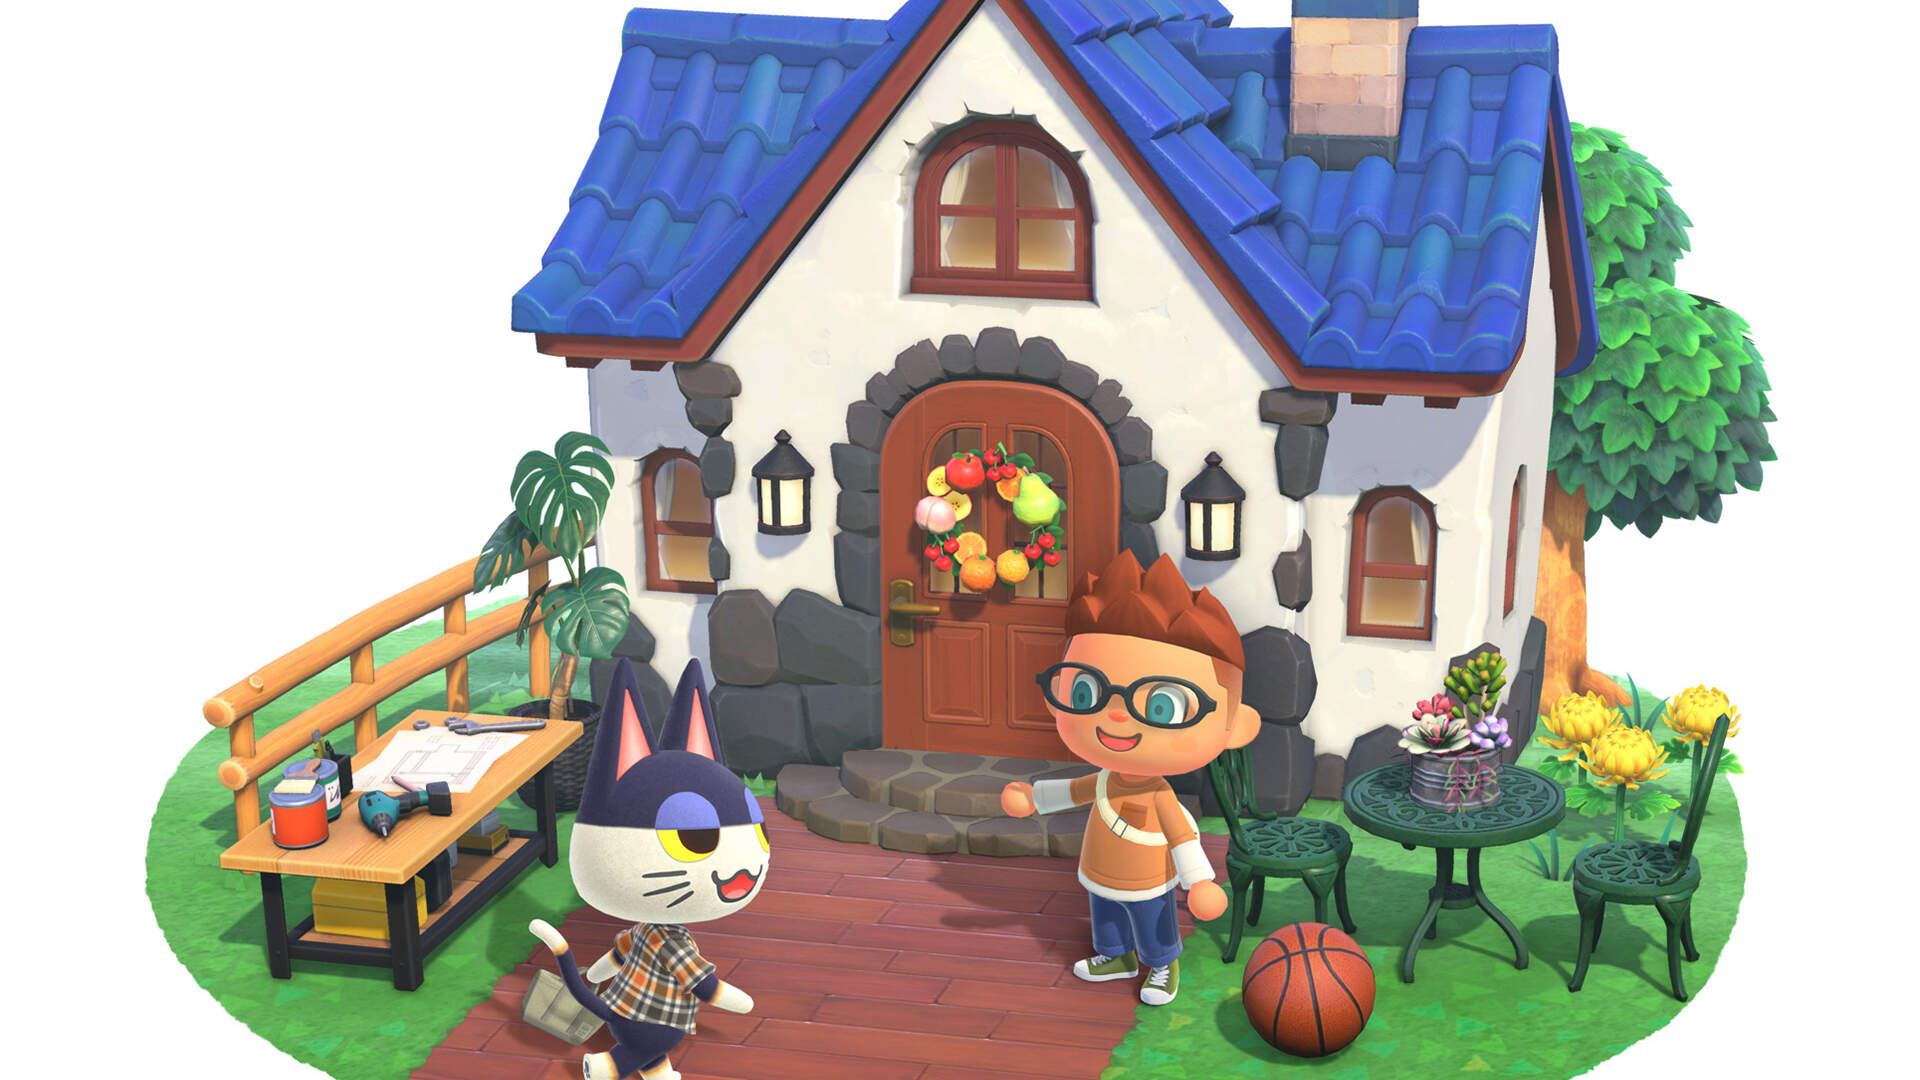 Animal Crossing New Horizons: How to Get the Lily of the Valley